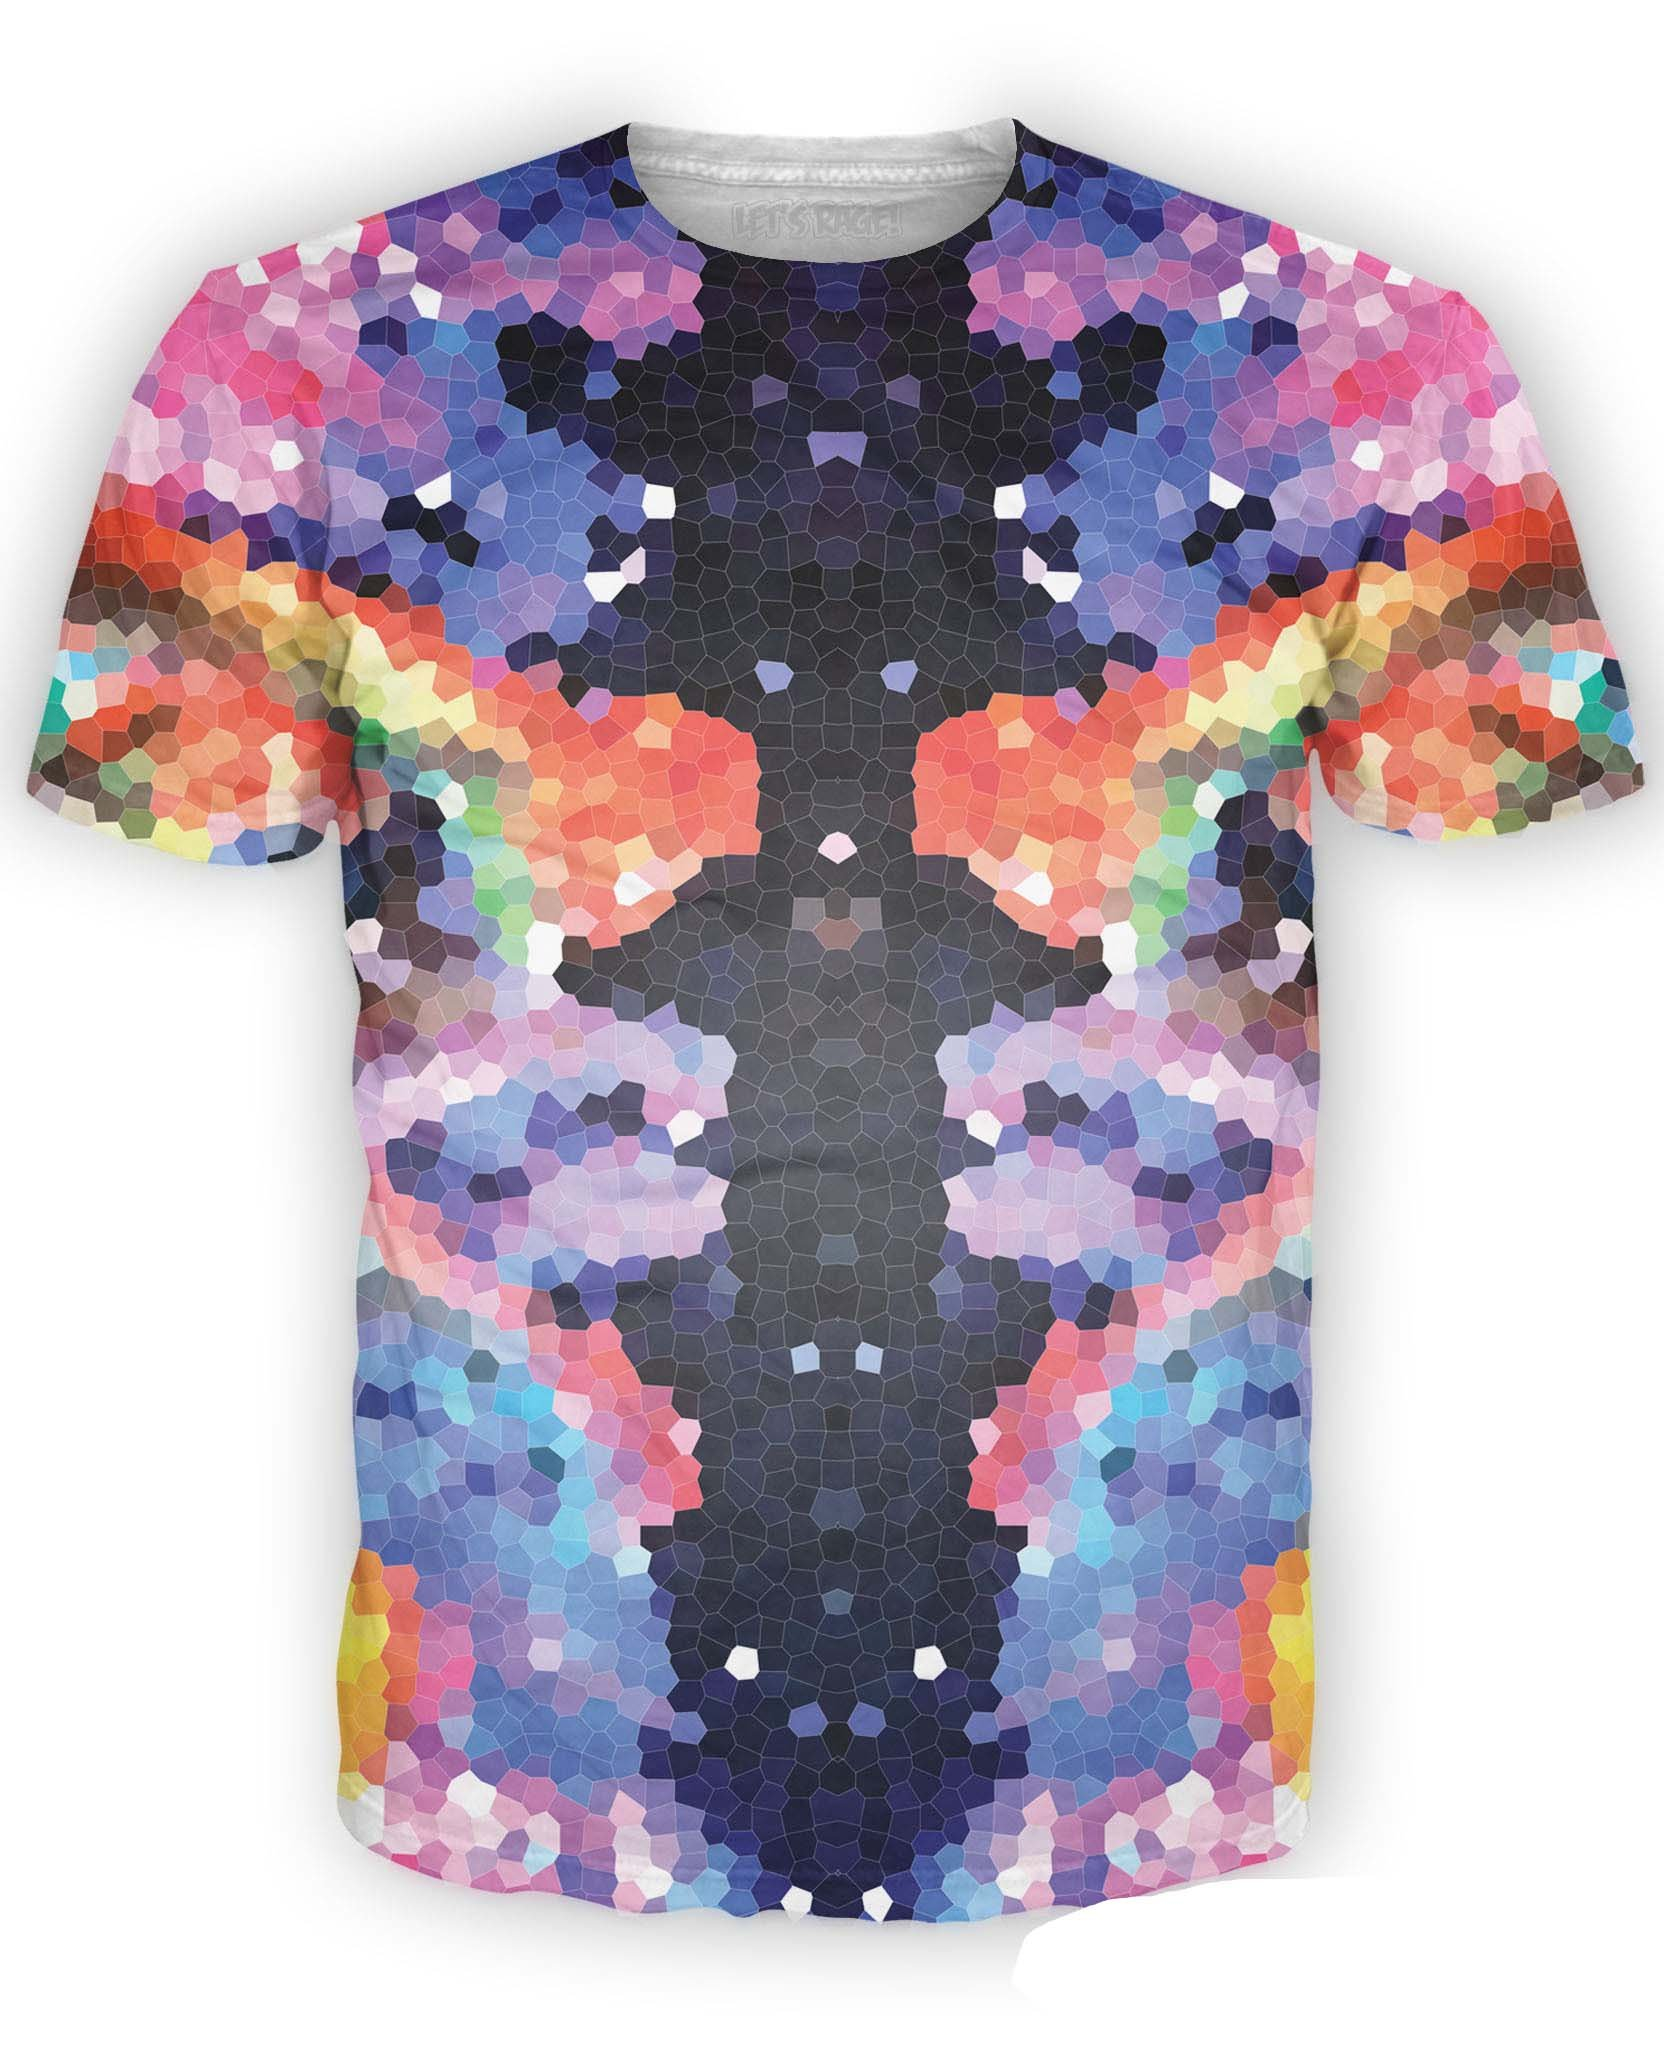 Crystal Symmetry Tee Shirt